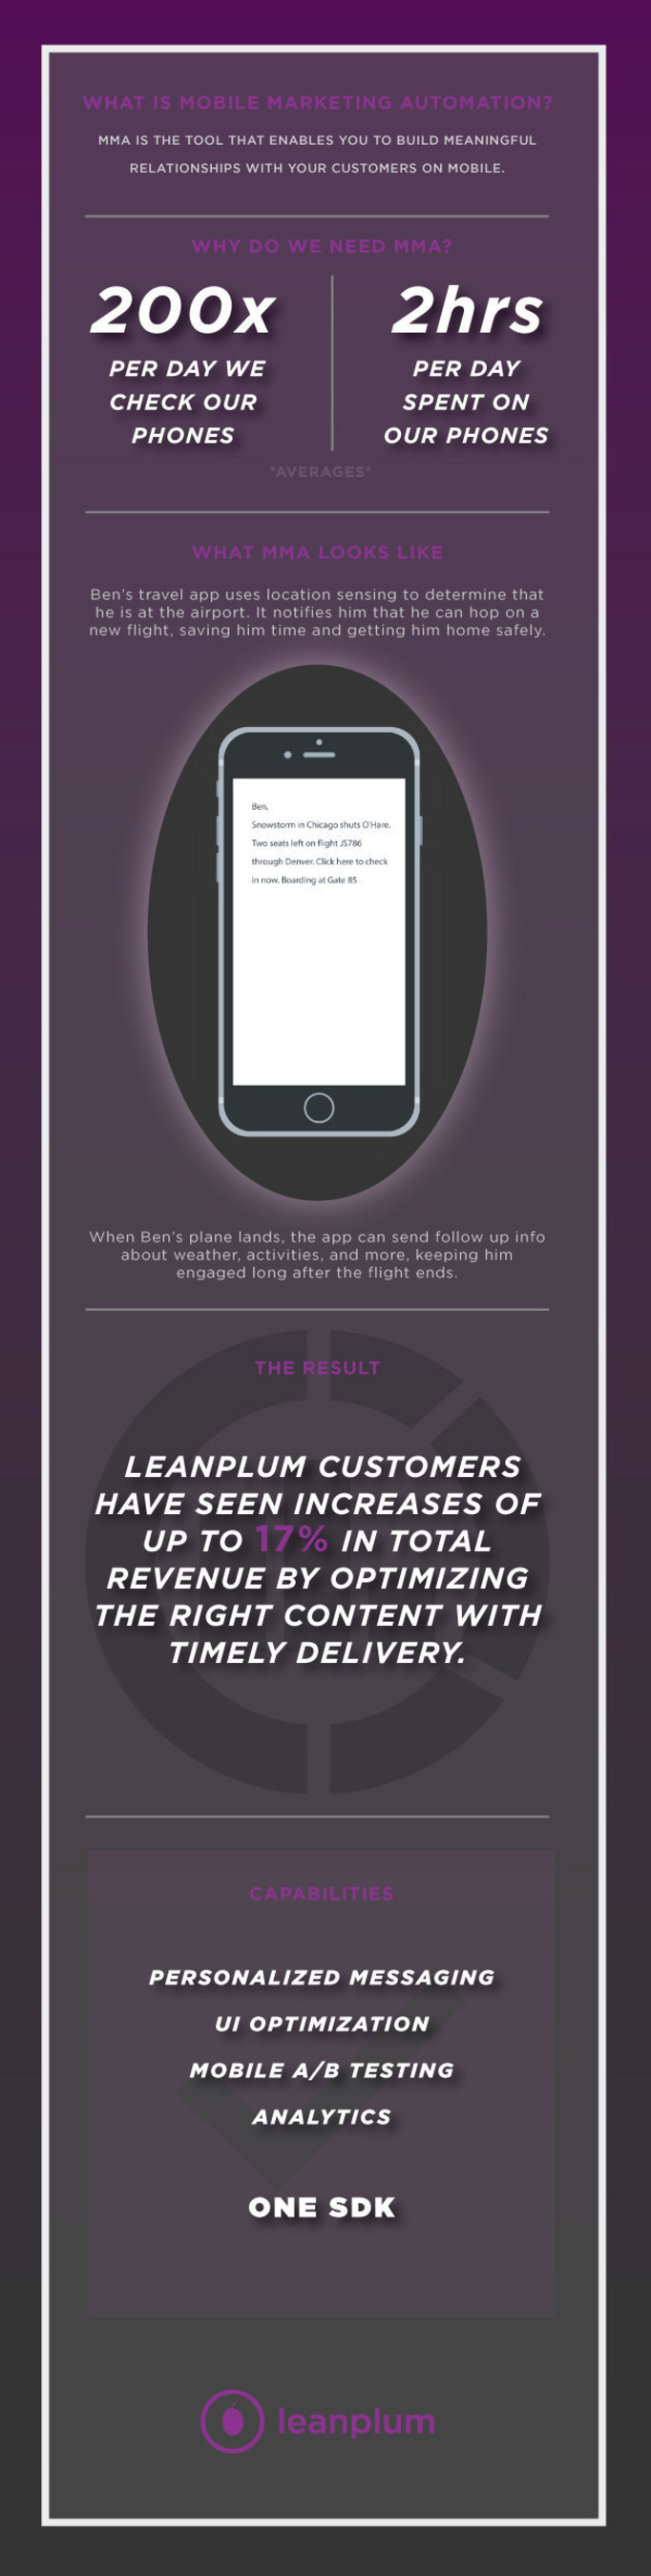 Leanplum Named Among Mobile Marketing Automation Solutions By Top Analyst Firm